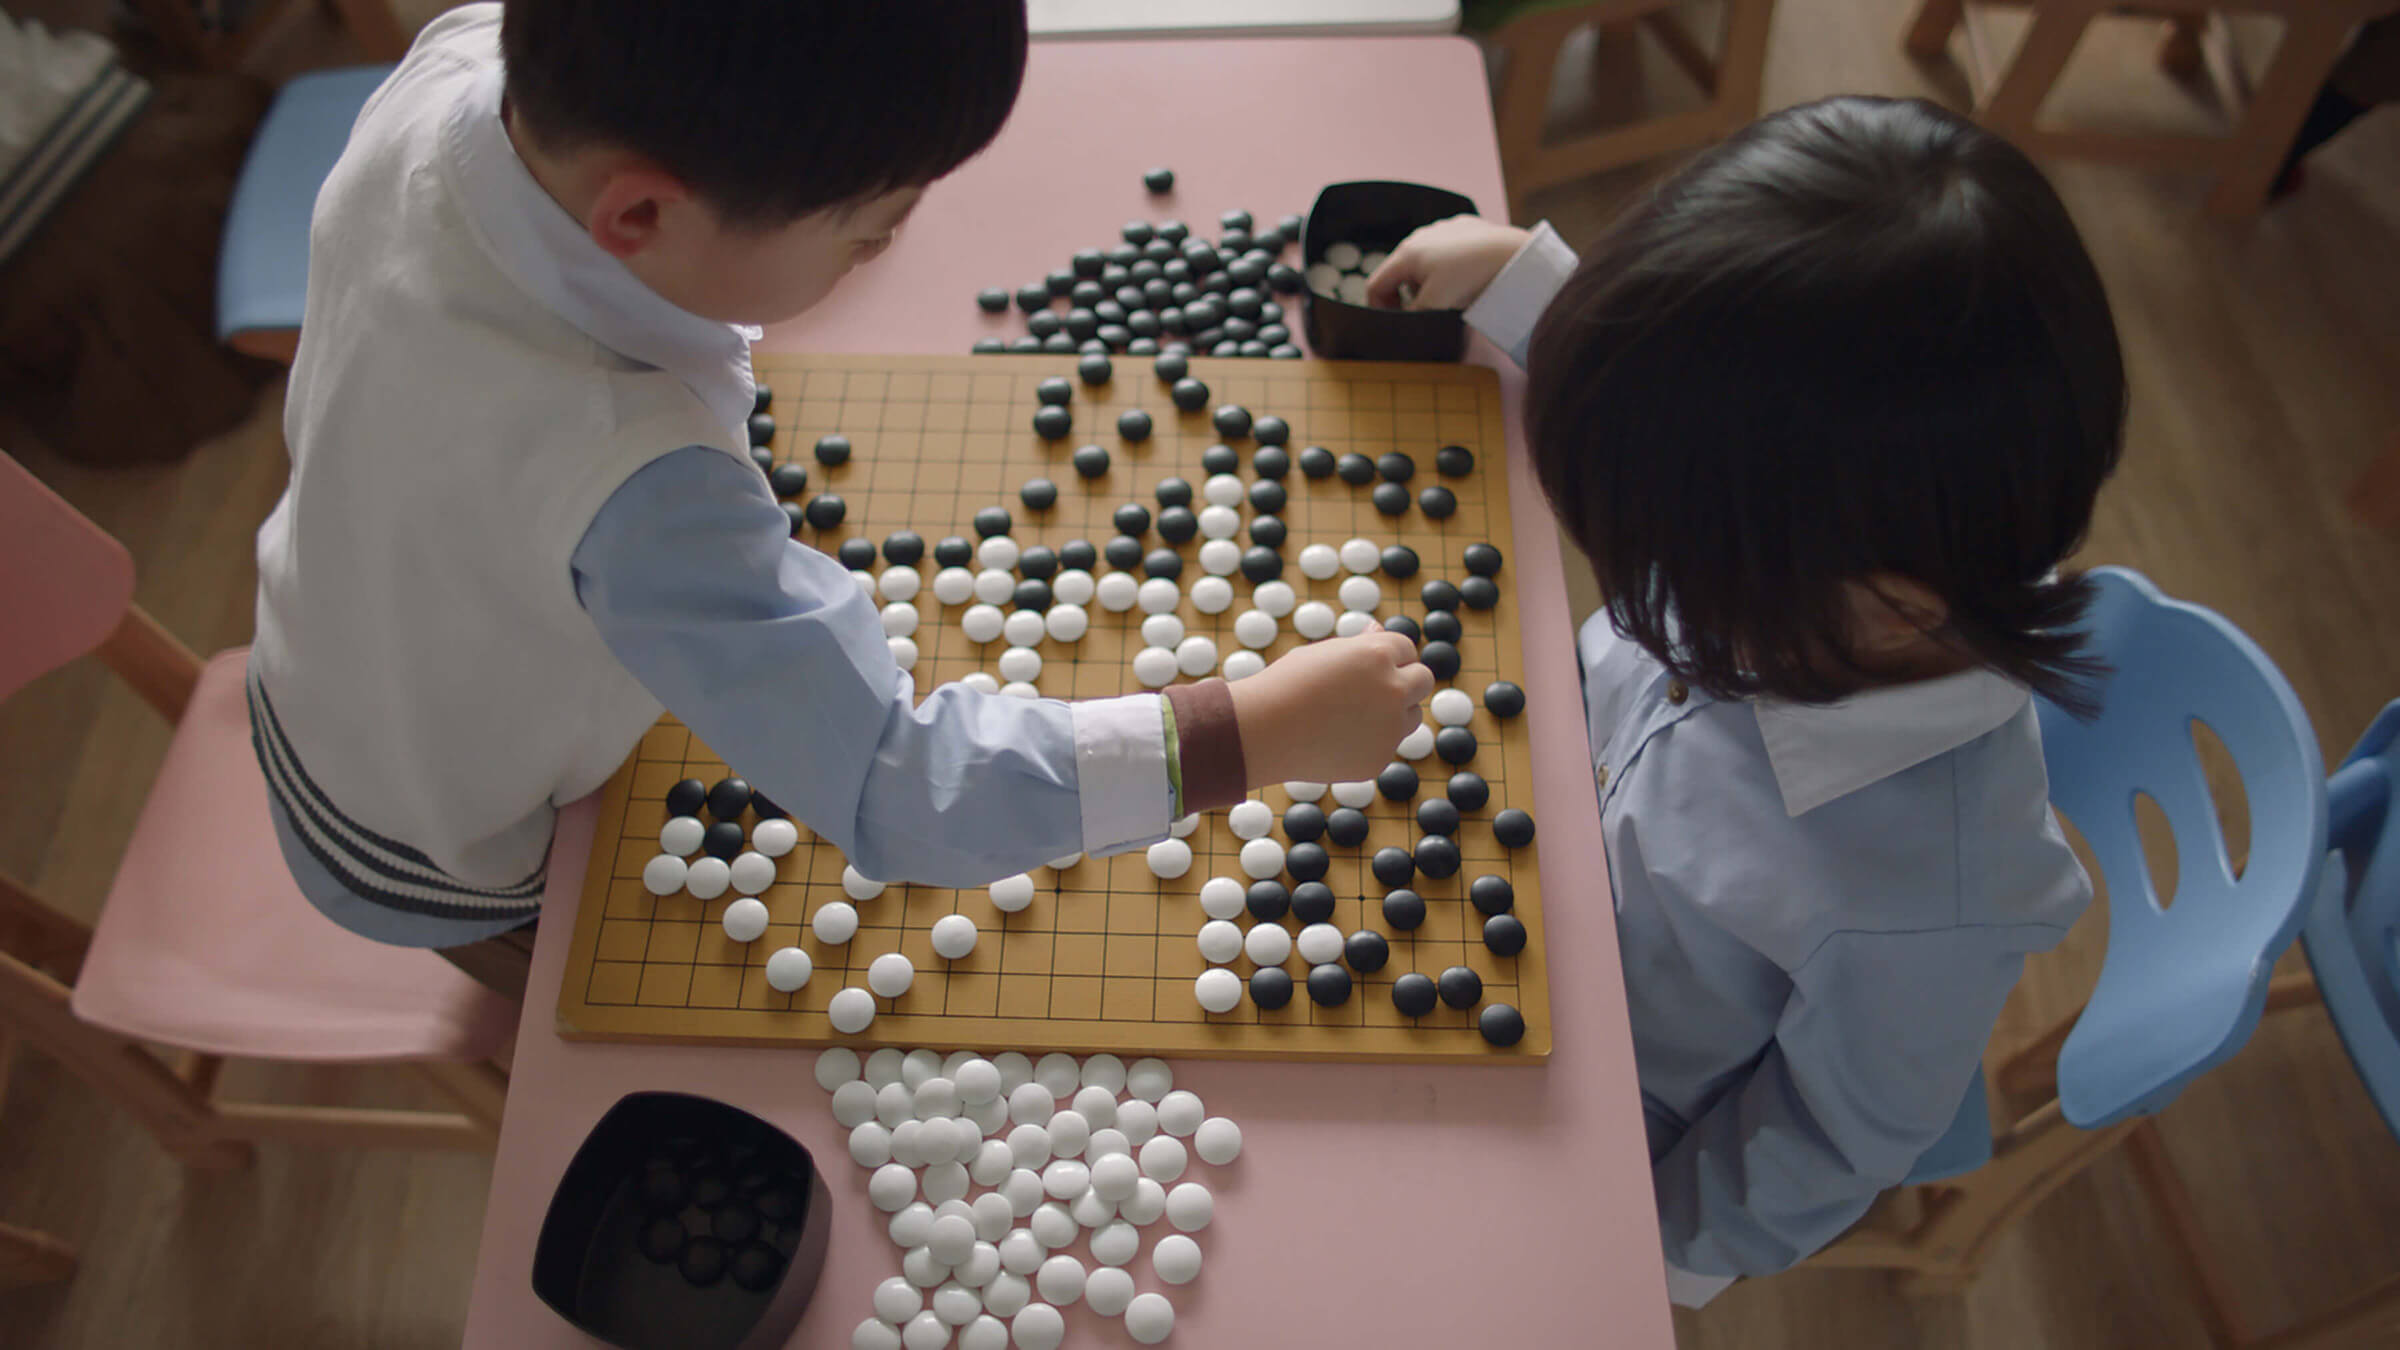 Google's DeepMind AI learns by itself as AlphaGo Zero beats its predecessor